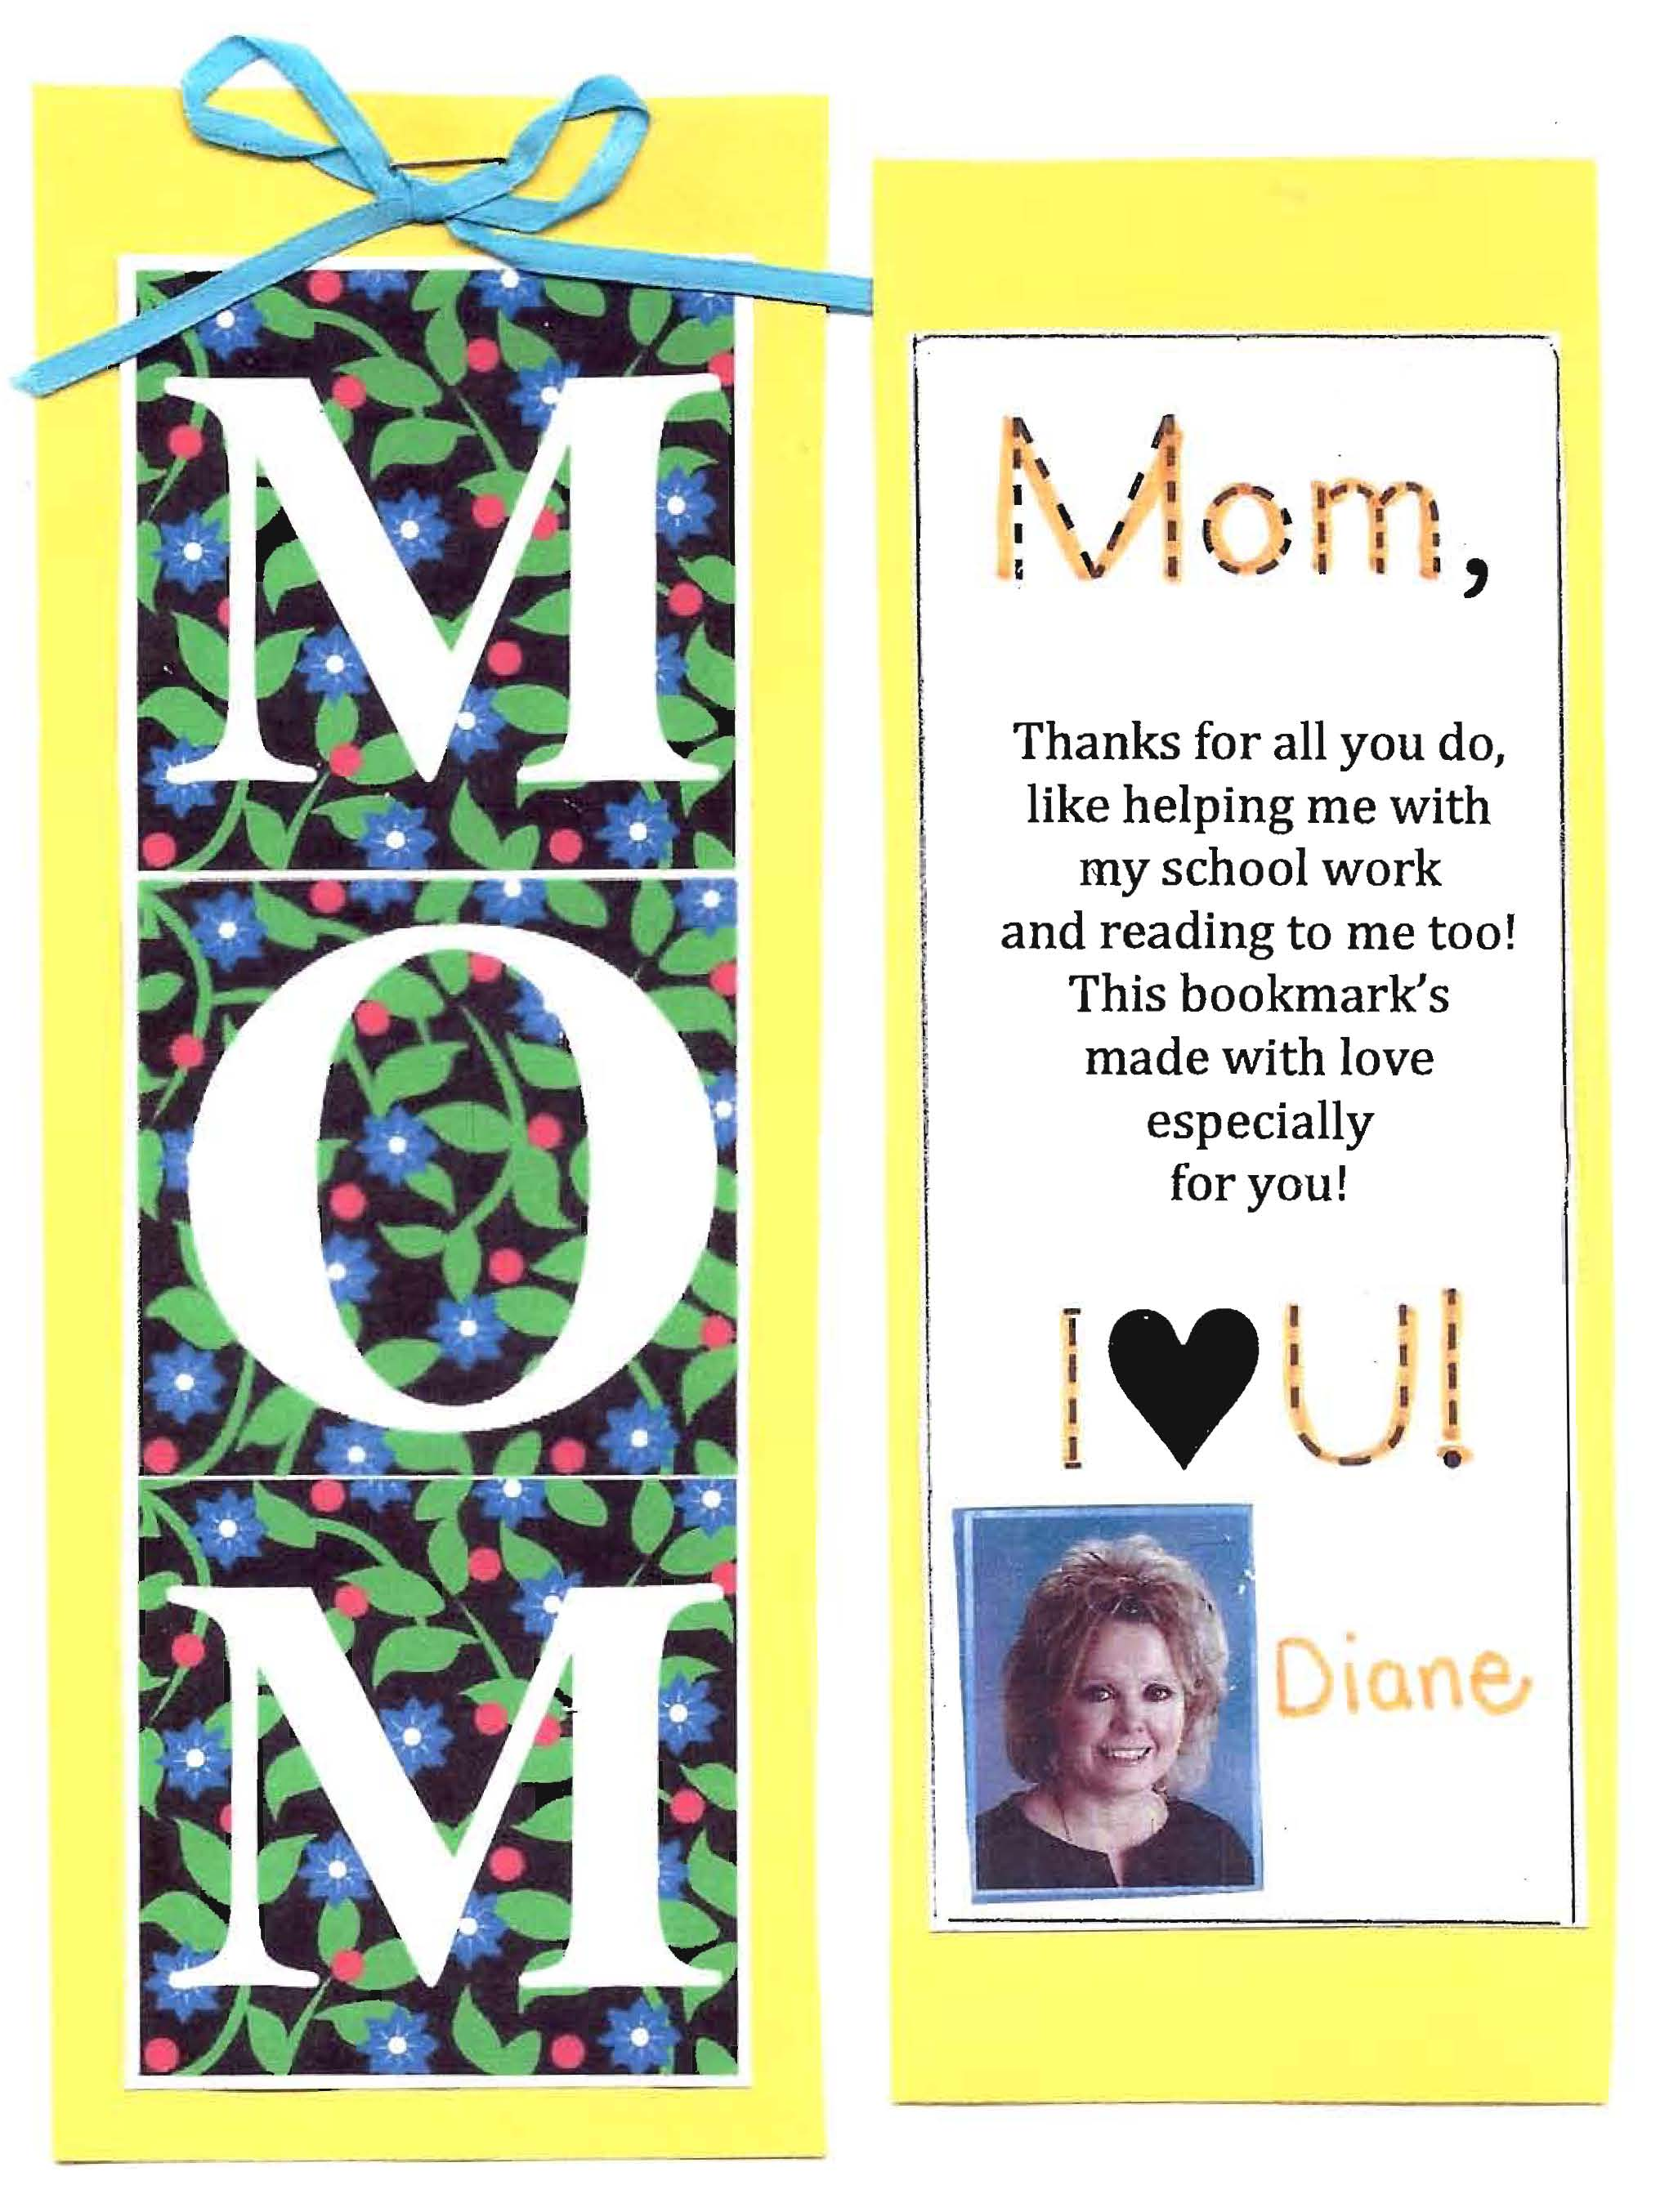 mother's day gift, mother's day crafts, ideas for mother's day, mothers day bookmark, mothers day activities,